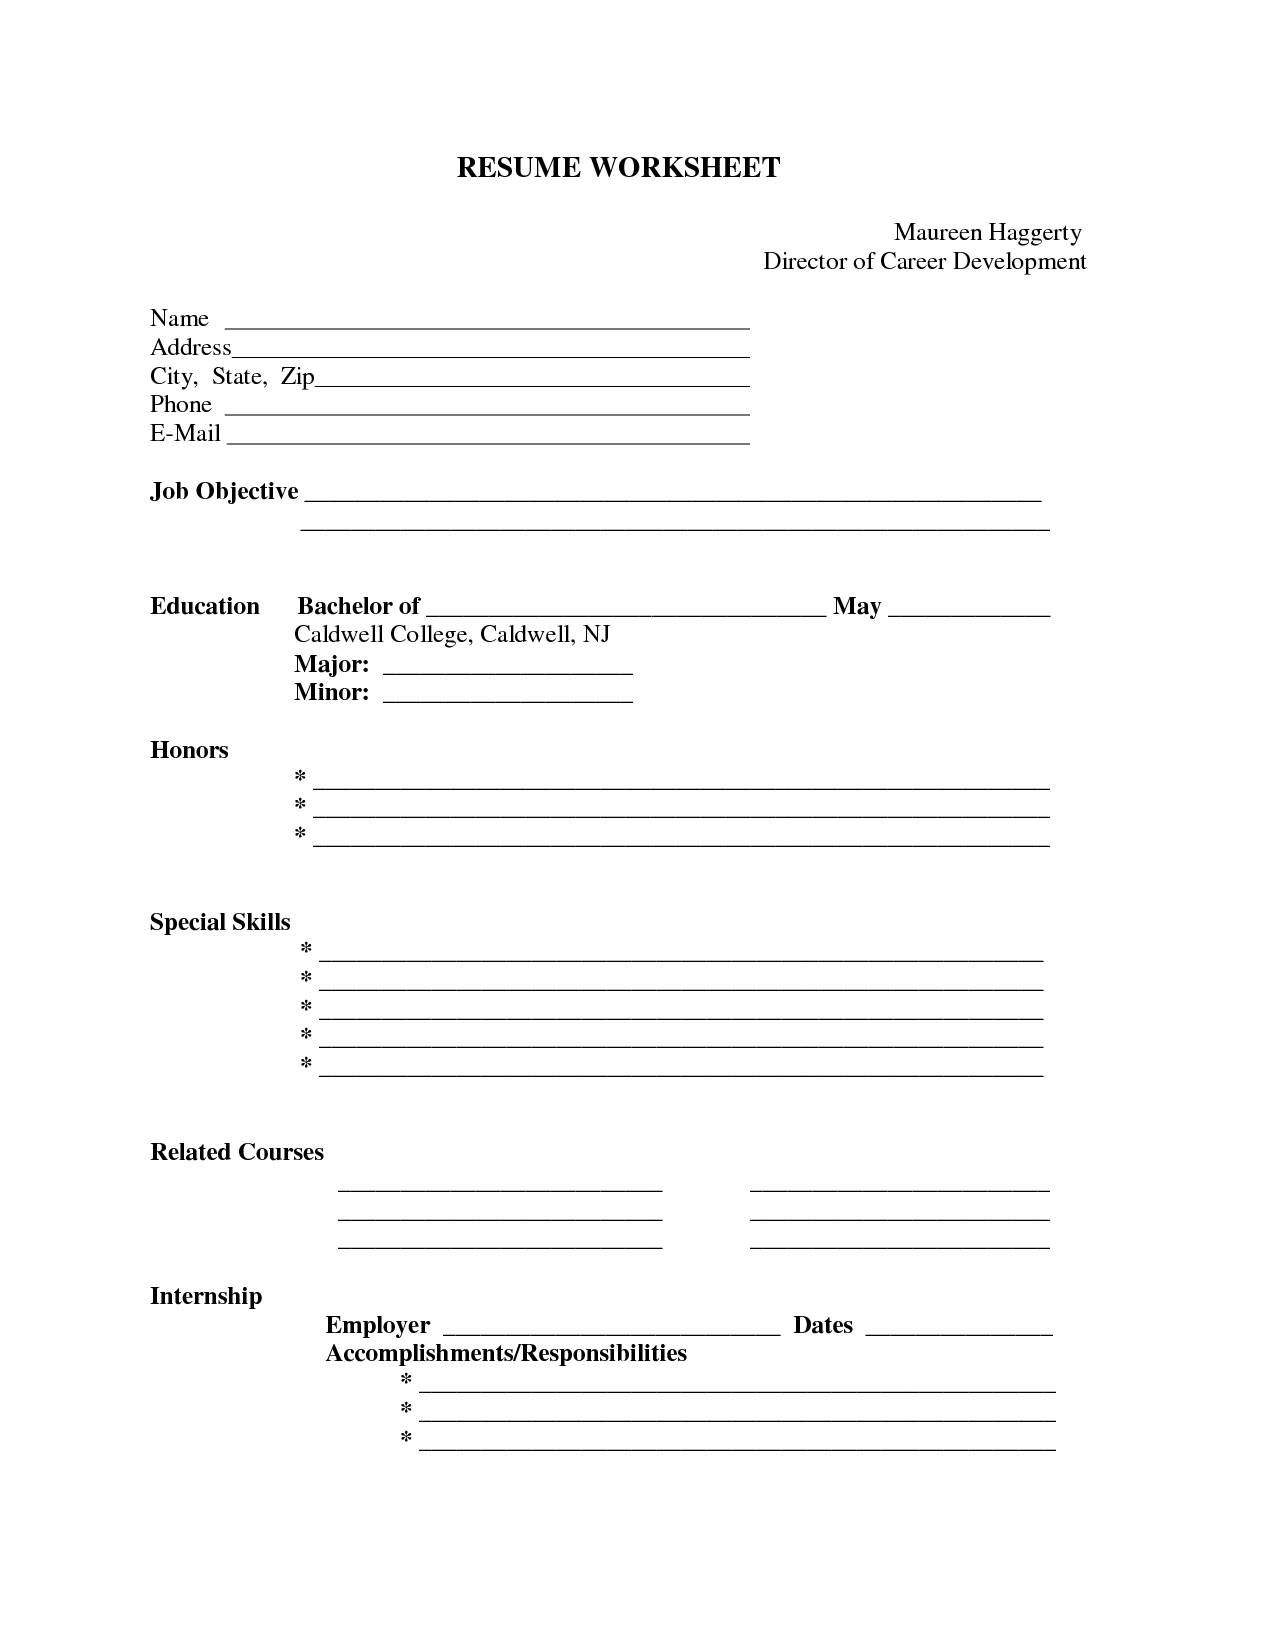 Resume Template For High School Student Free Printable Blank Resume Forms  Httpwwwresumecareer